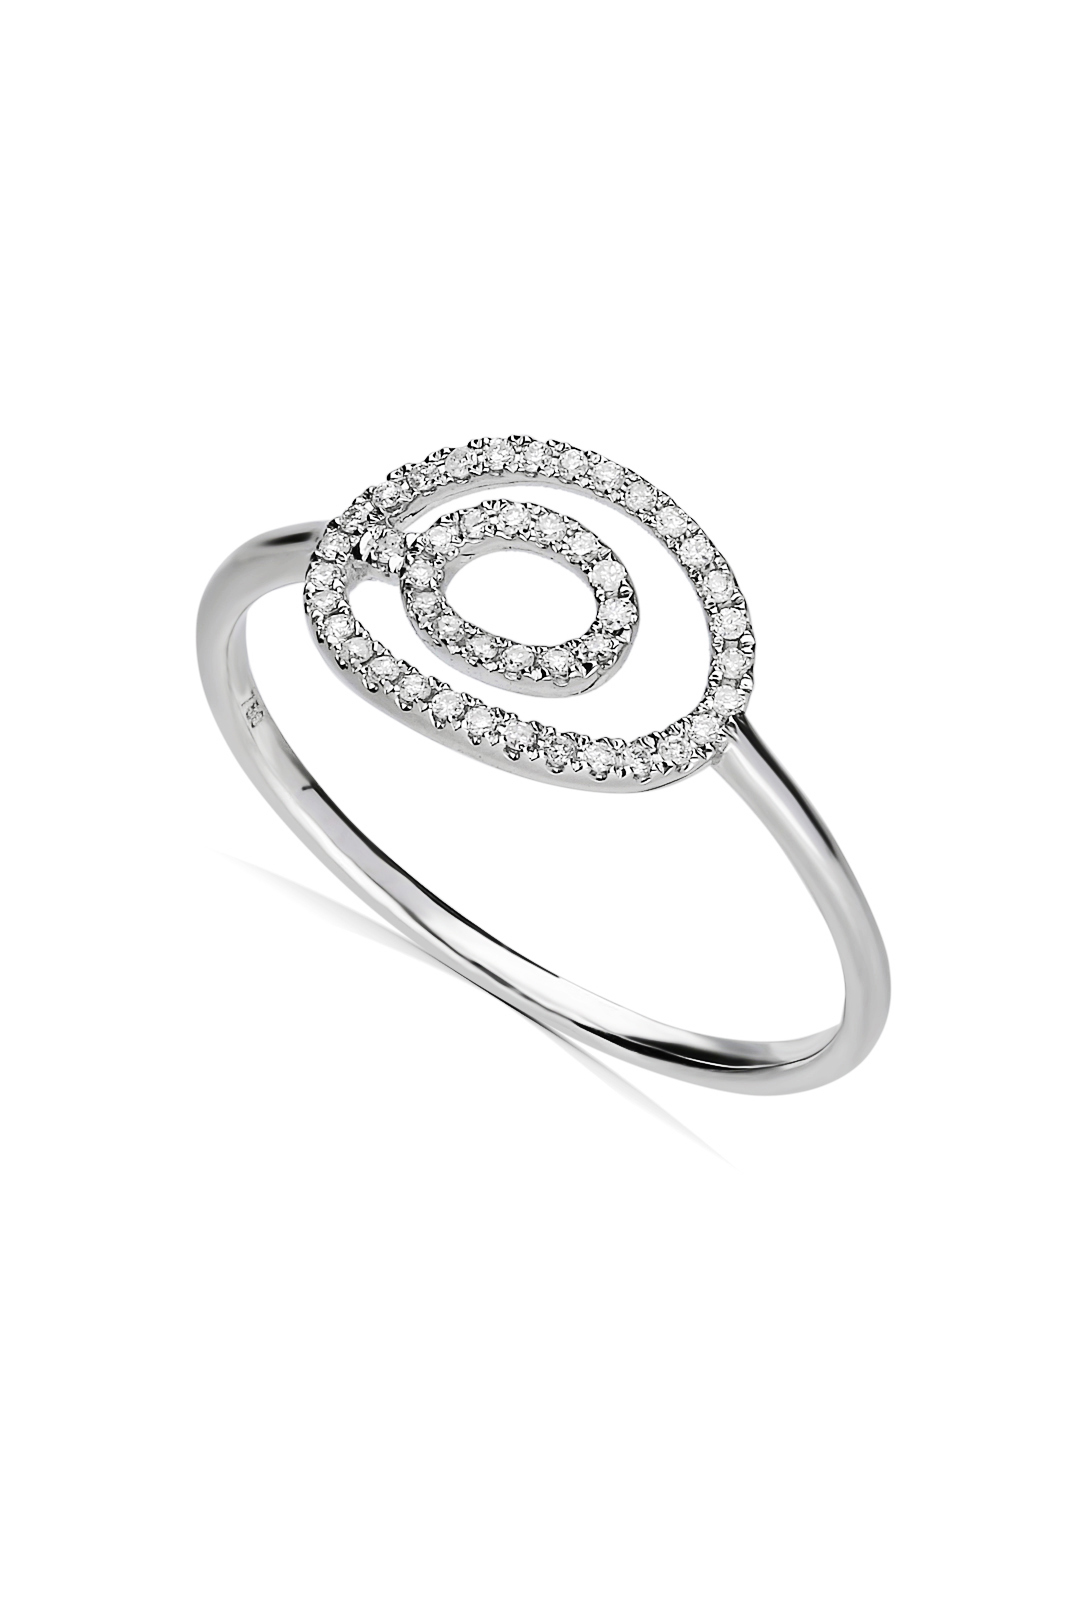 TWO CIRCLES DIAMOND RING